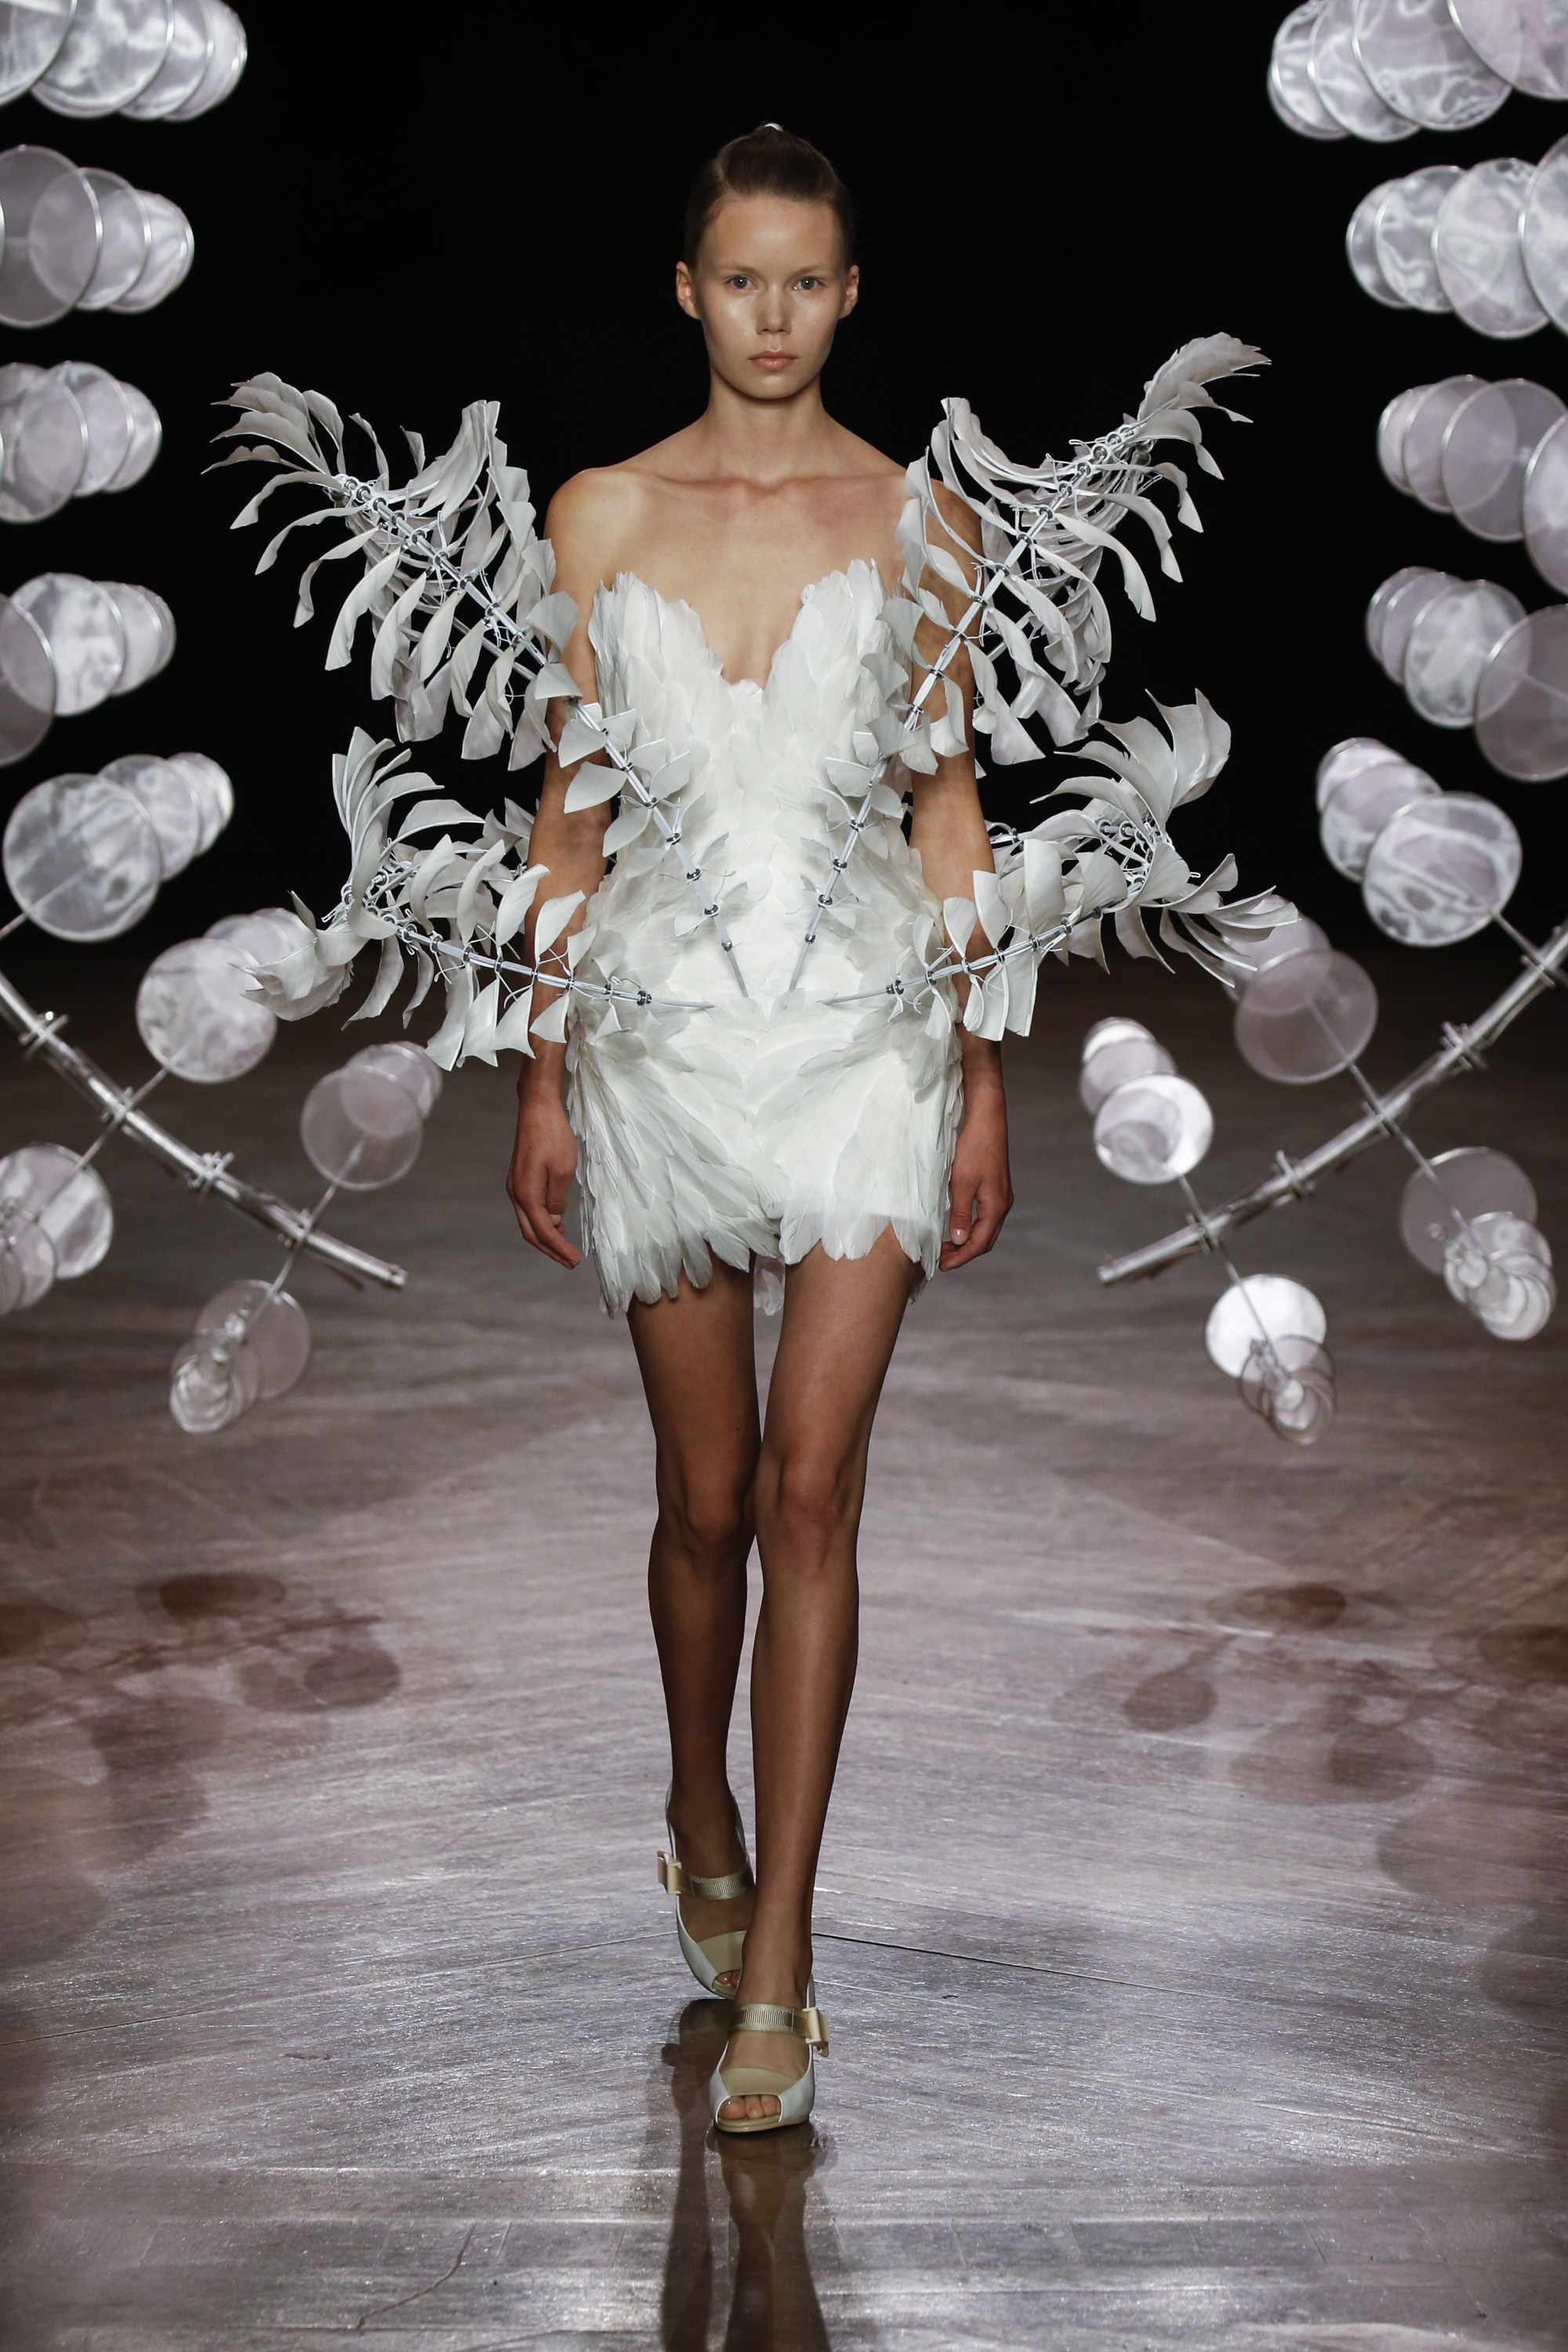 Infinity Dress from Iris van Herpen's Hypnosis collection, Fall-Winter collection 2019 – 2020, shown in Paris, July 1st, 2019 (picture : courtesy of Iris van Herpen)